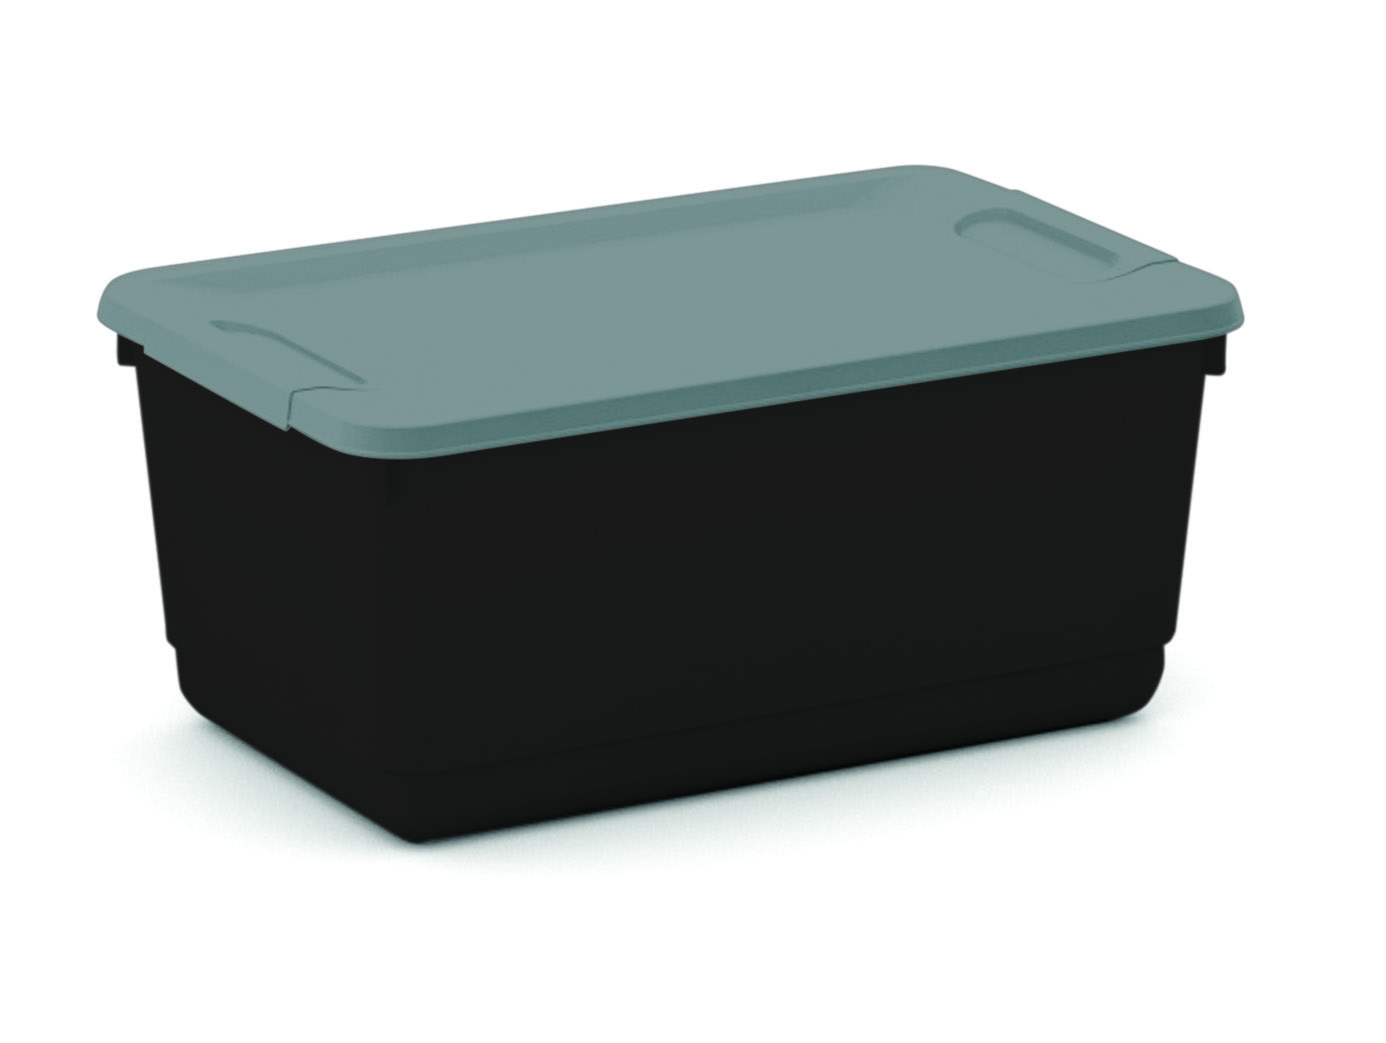 Mainstays 5.3 Quart Storage Box, Black & Silver